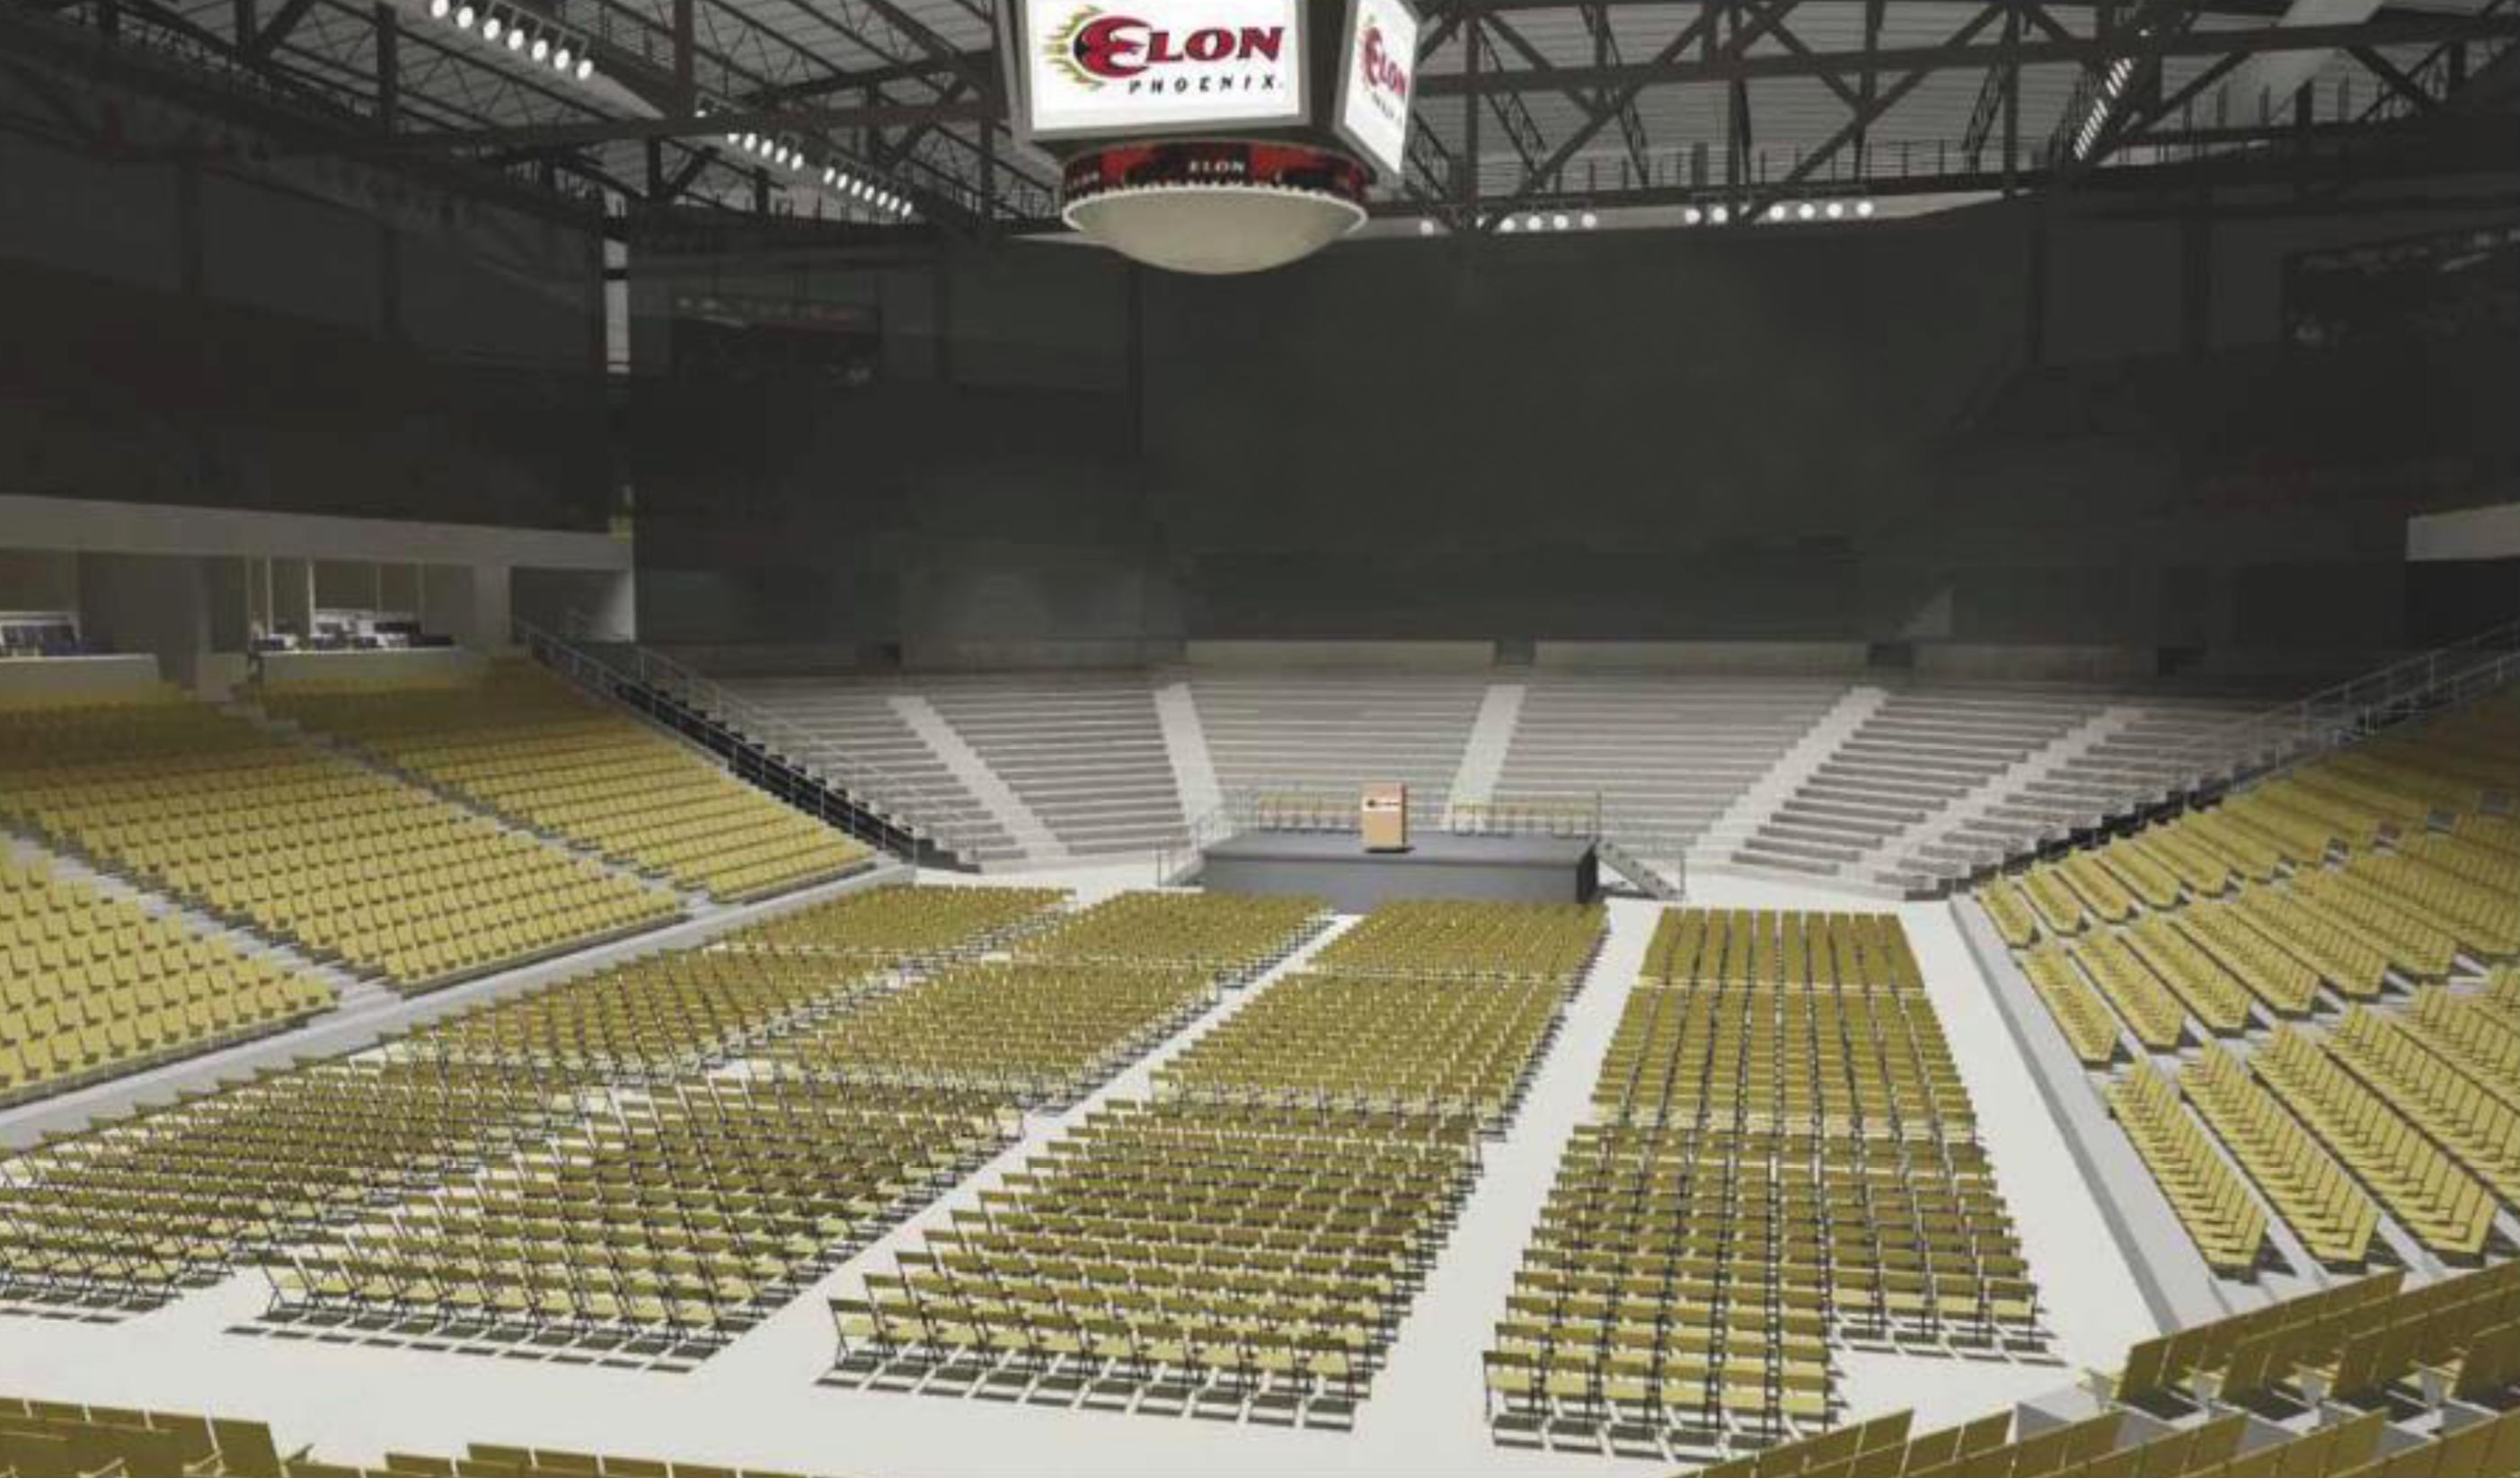 Rendering of the multipurpose convocation center